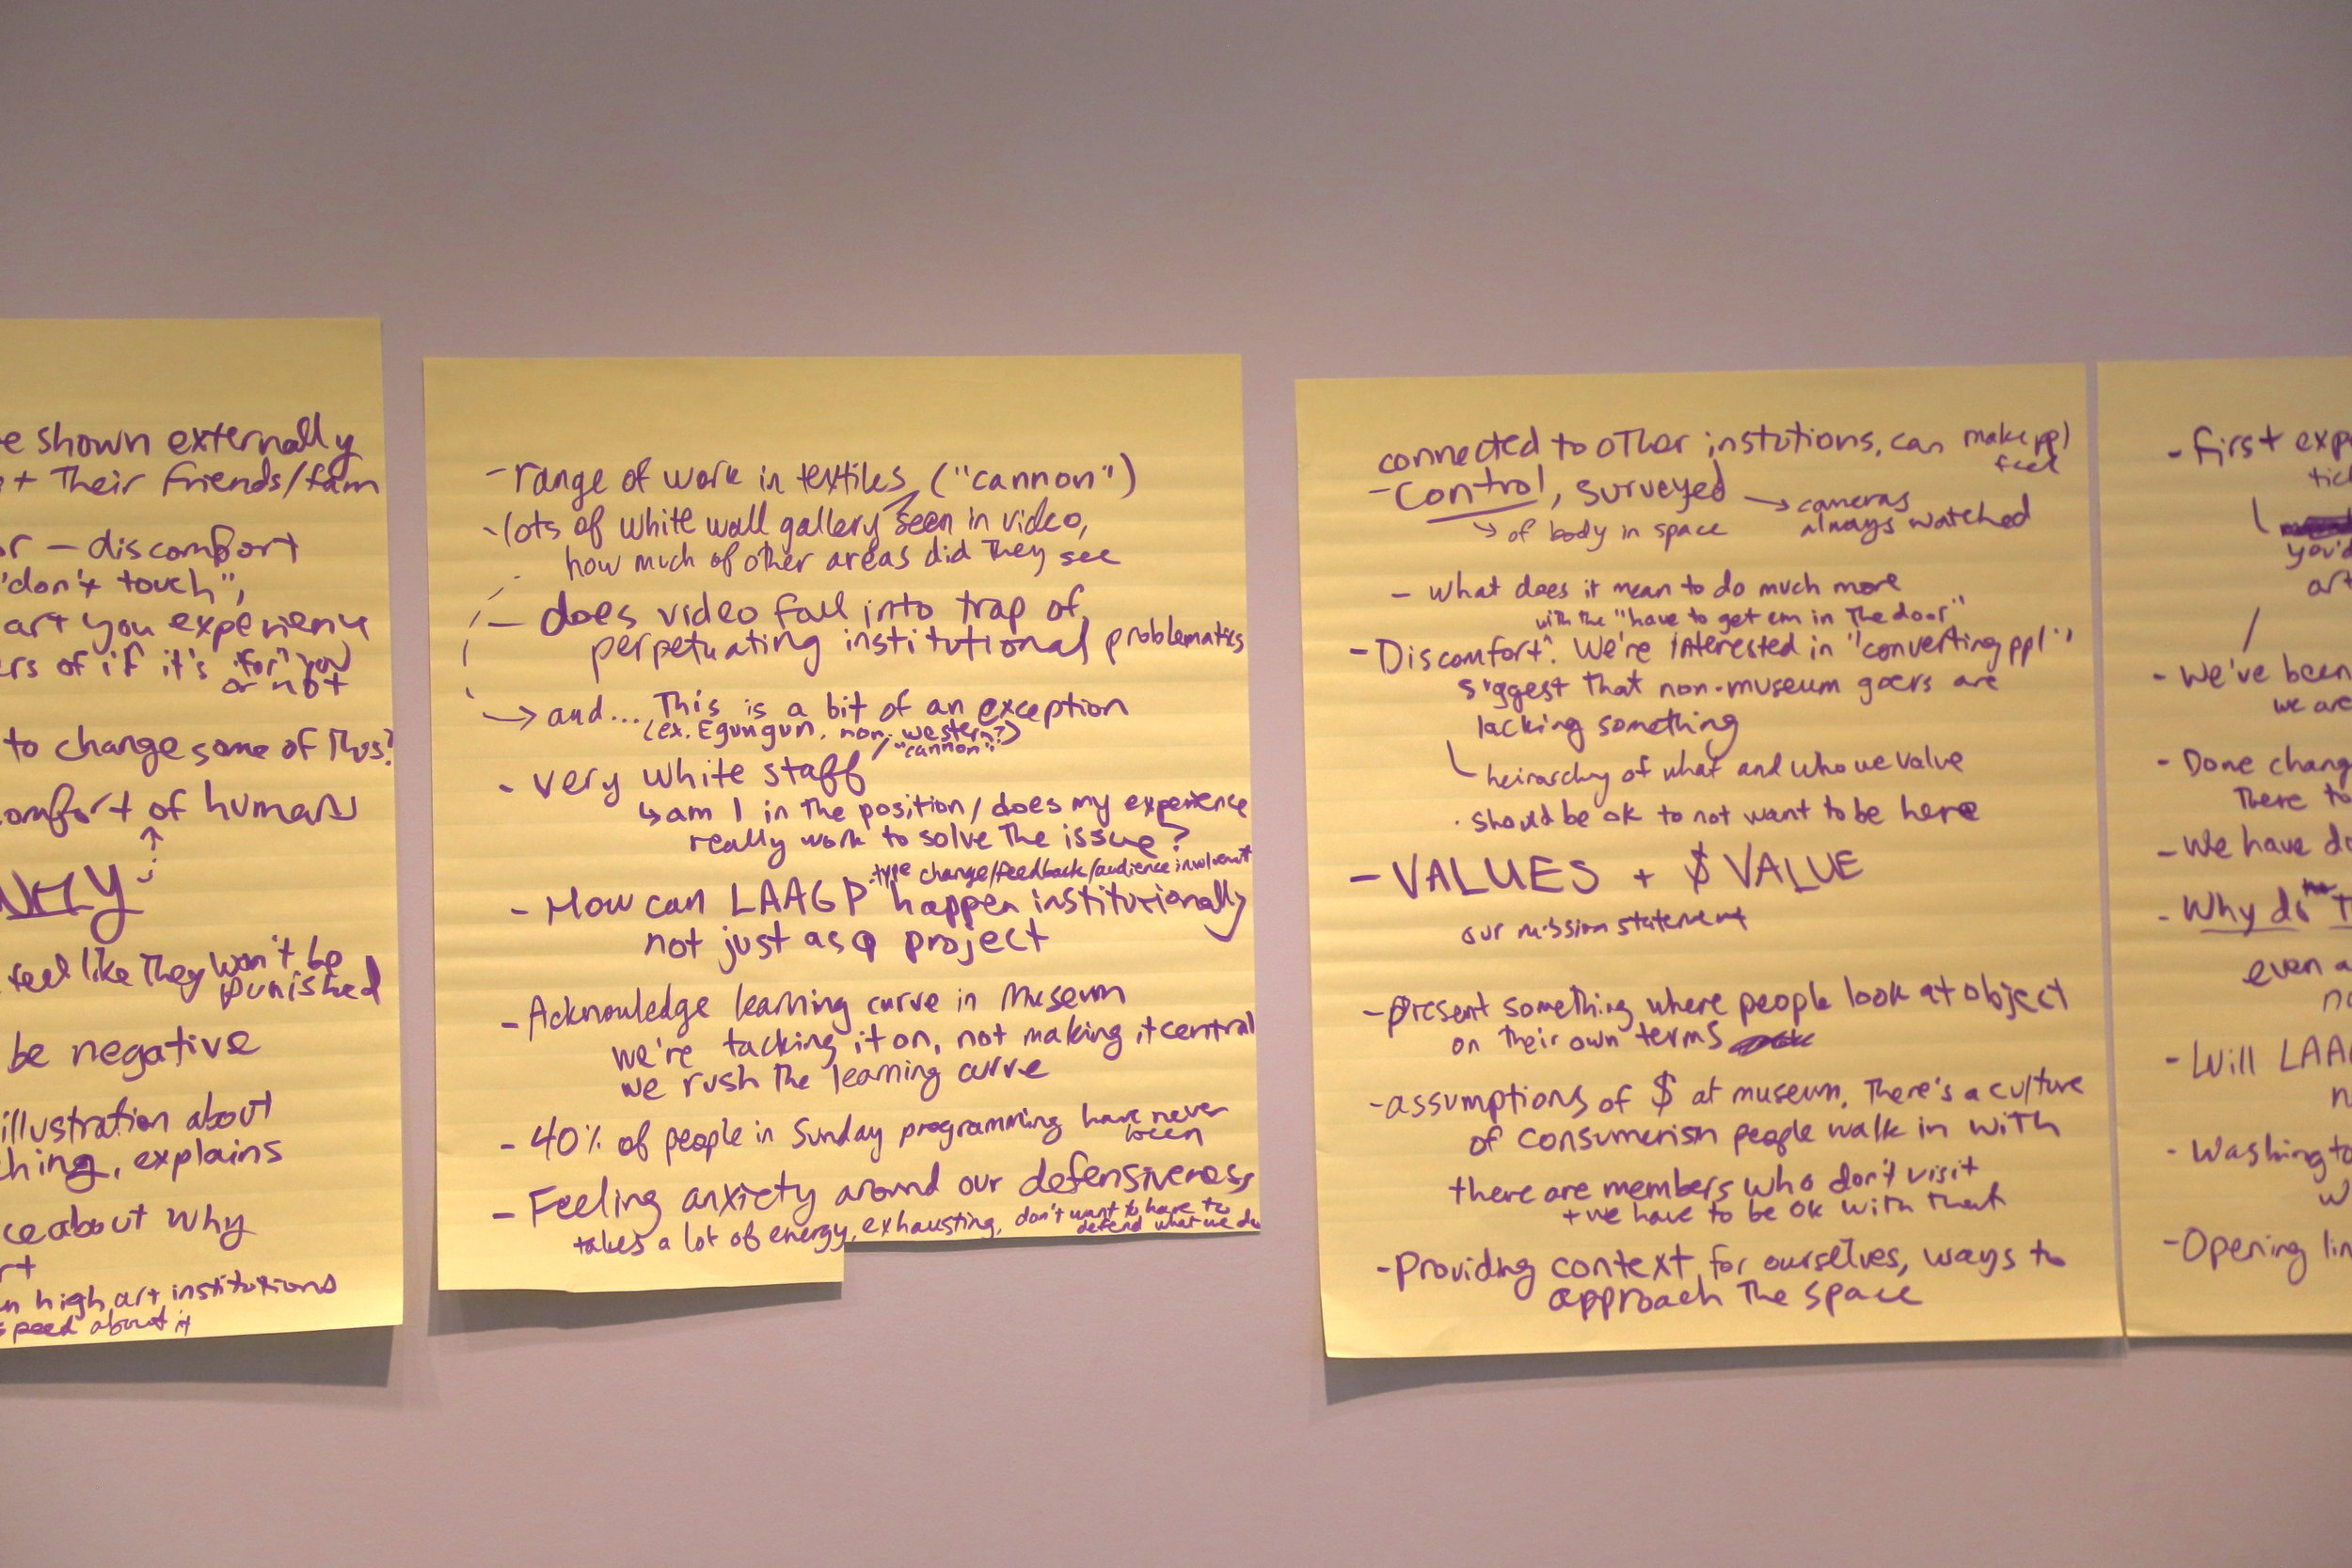 Notes from the museum staff discussion.